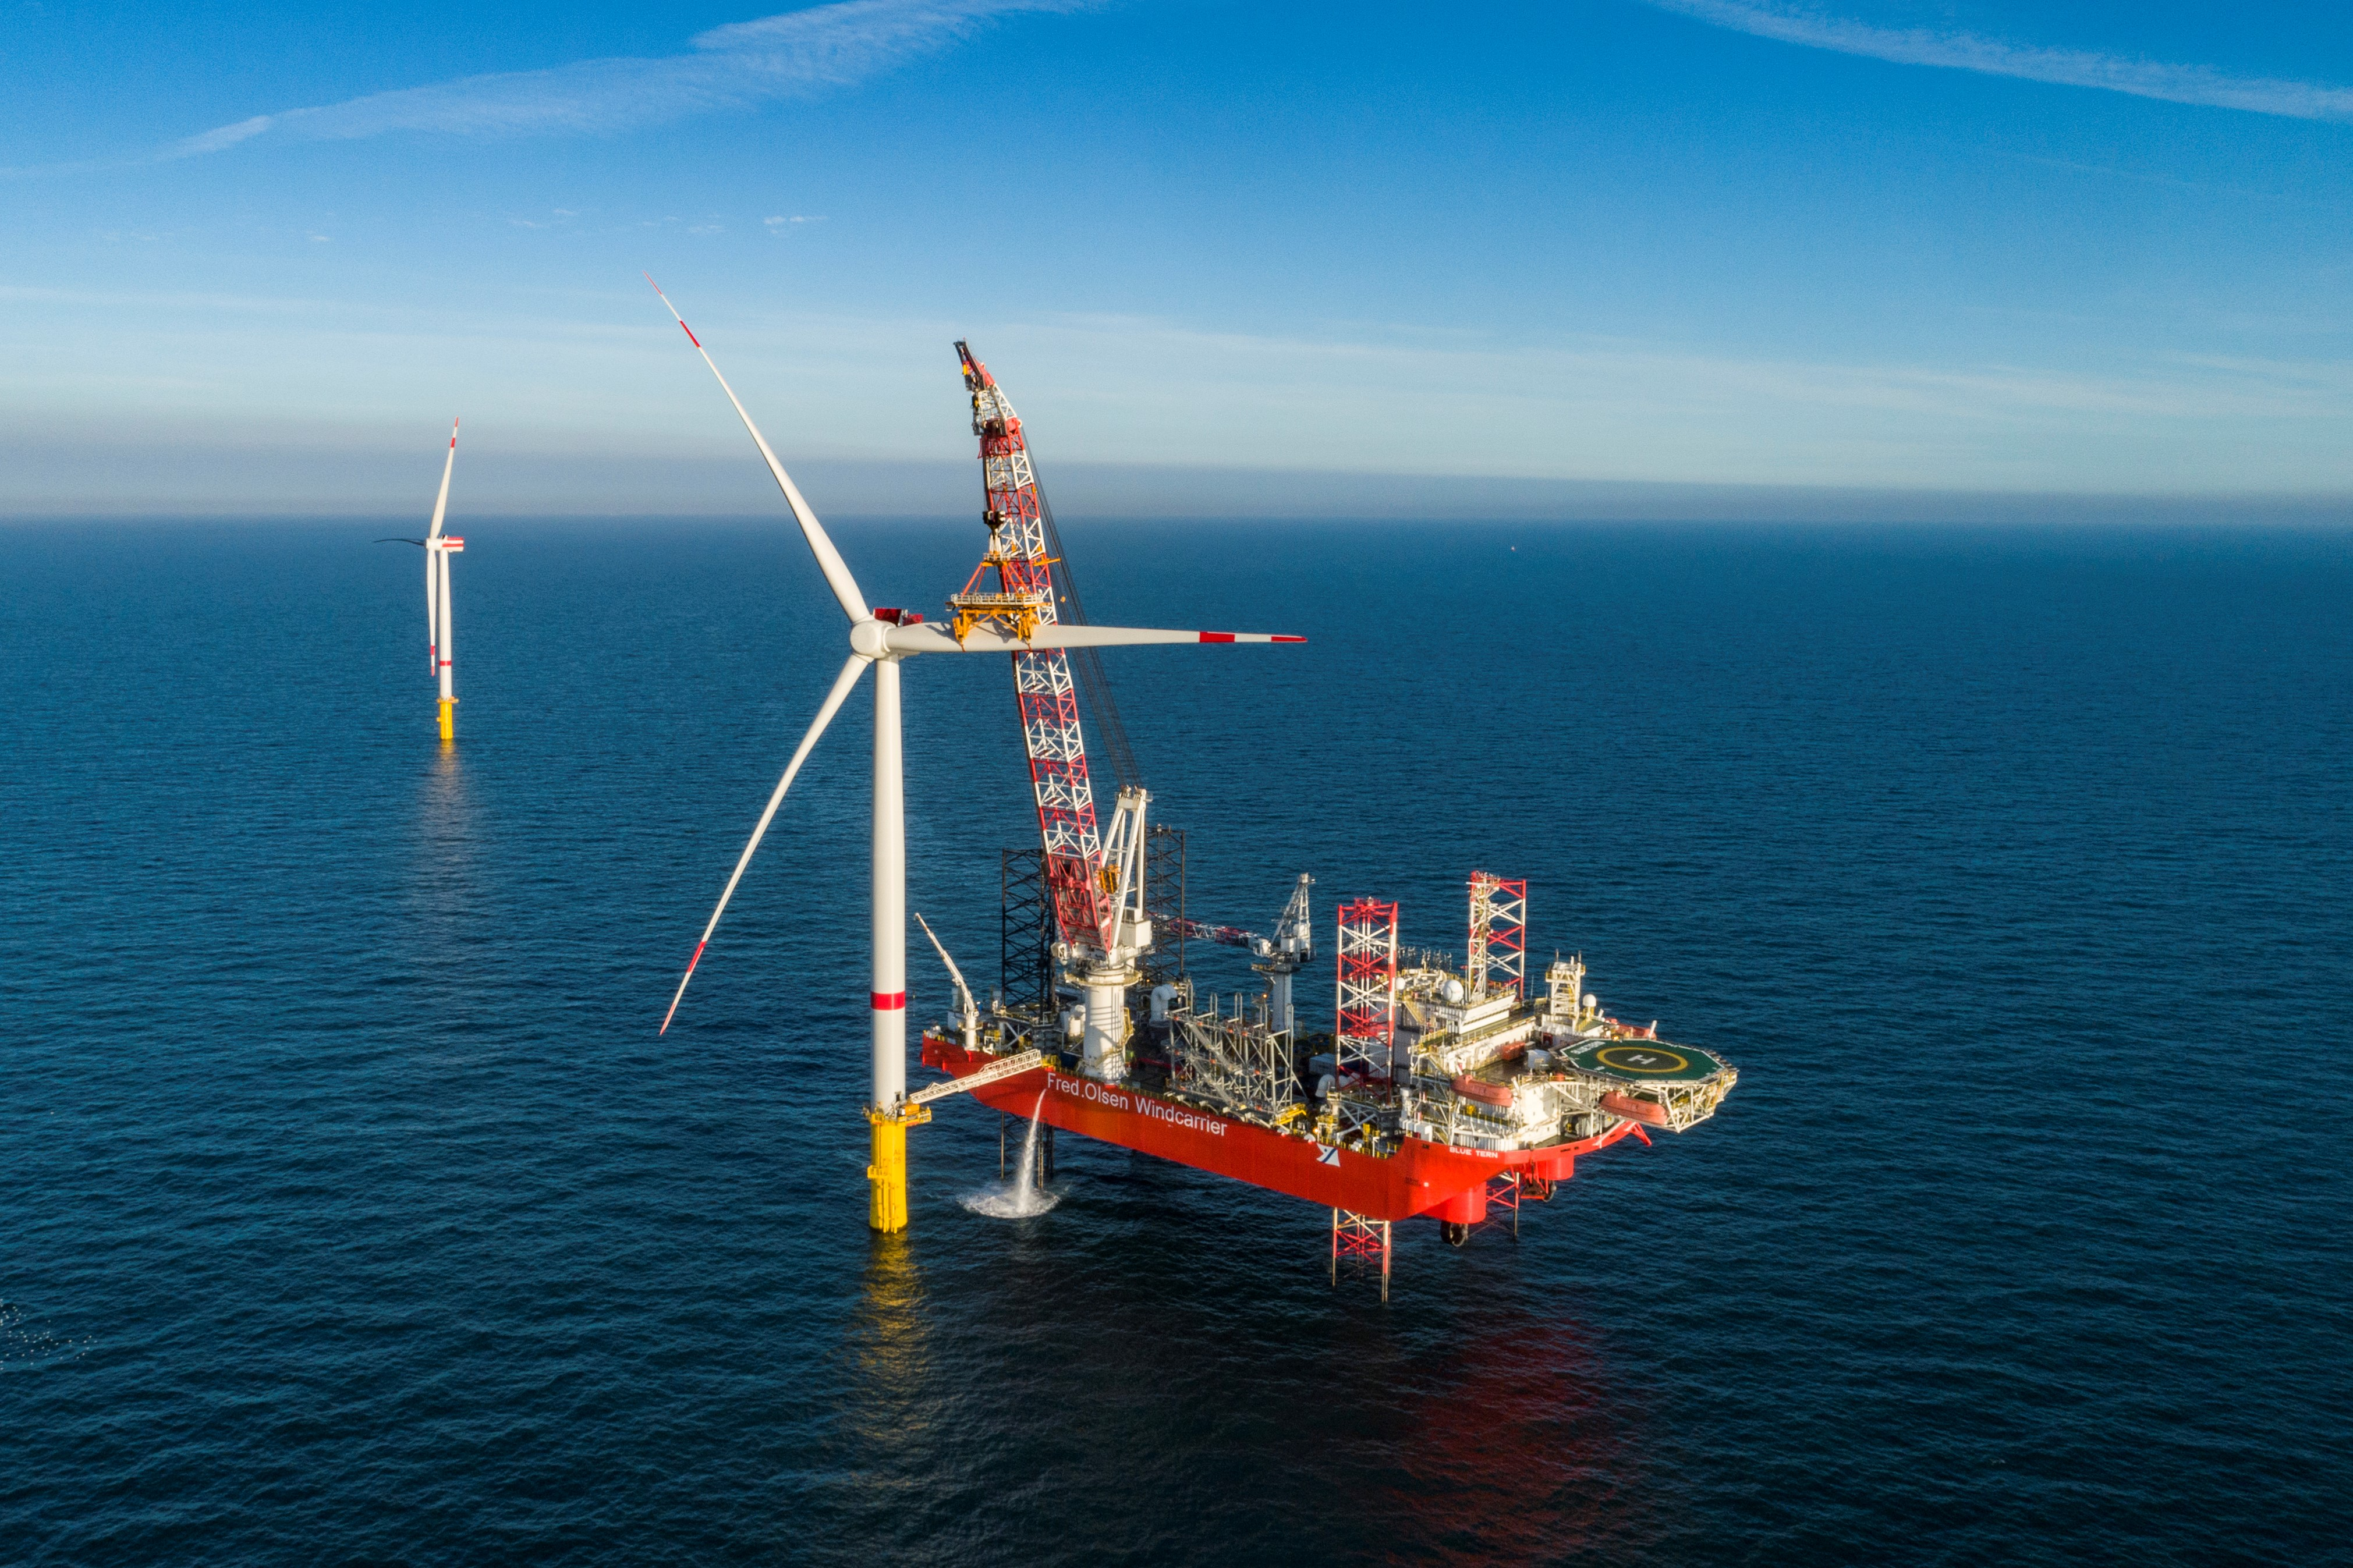 EnBW Offshore Windpark Hohe See und Albatros (Foto: EnBW)